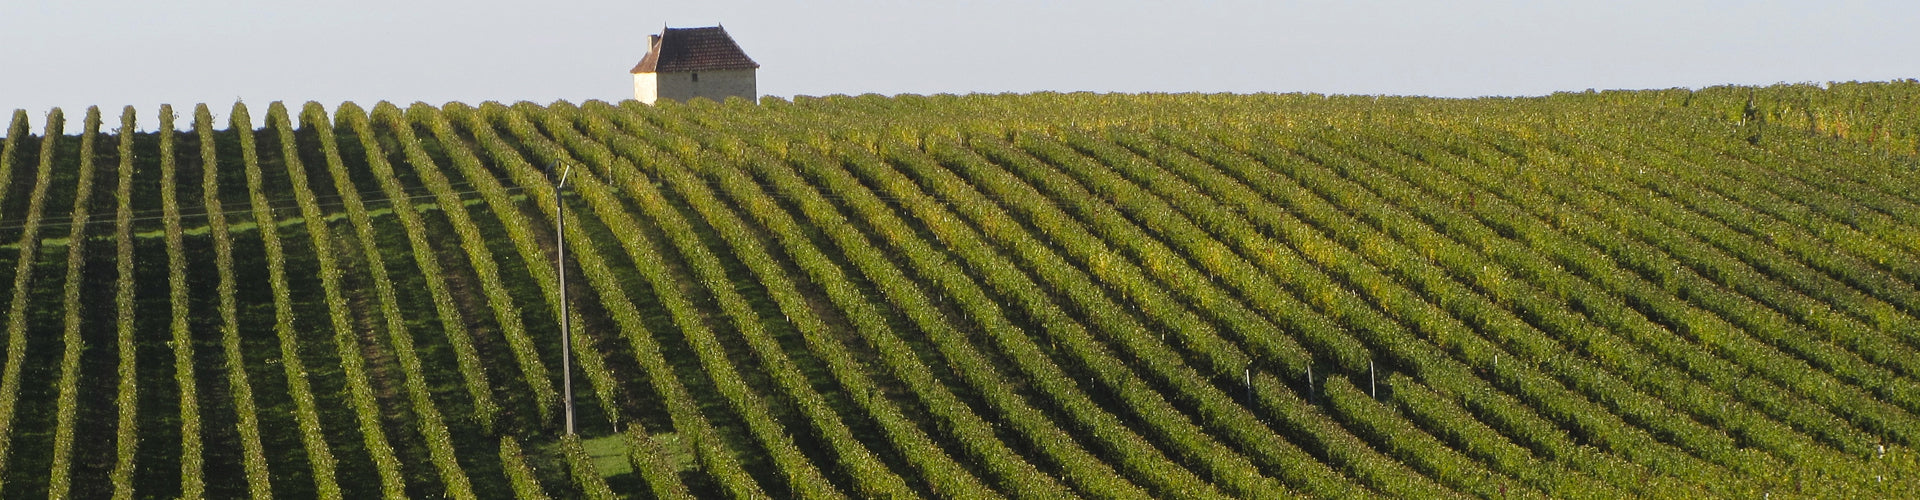 Vineyards in Entre Deux Mers, Bordeaux